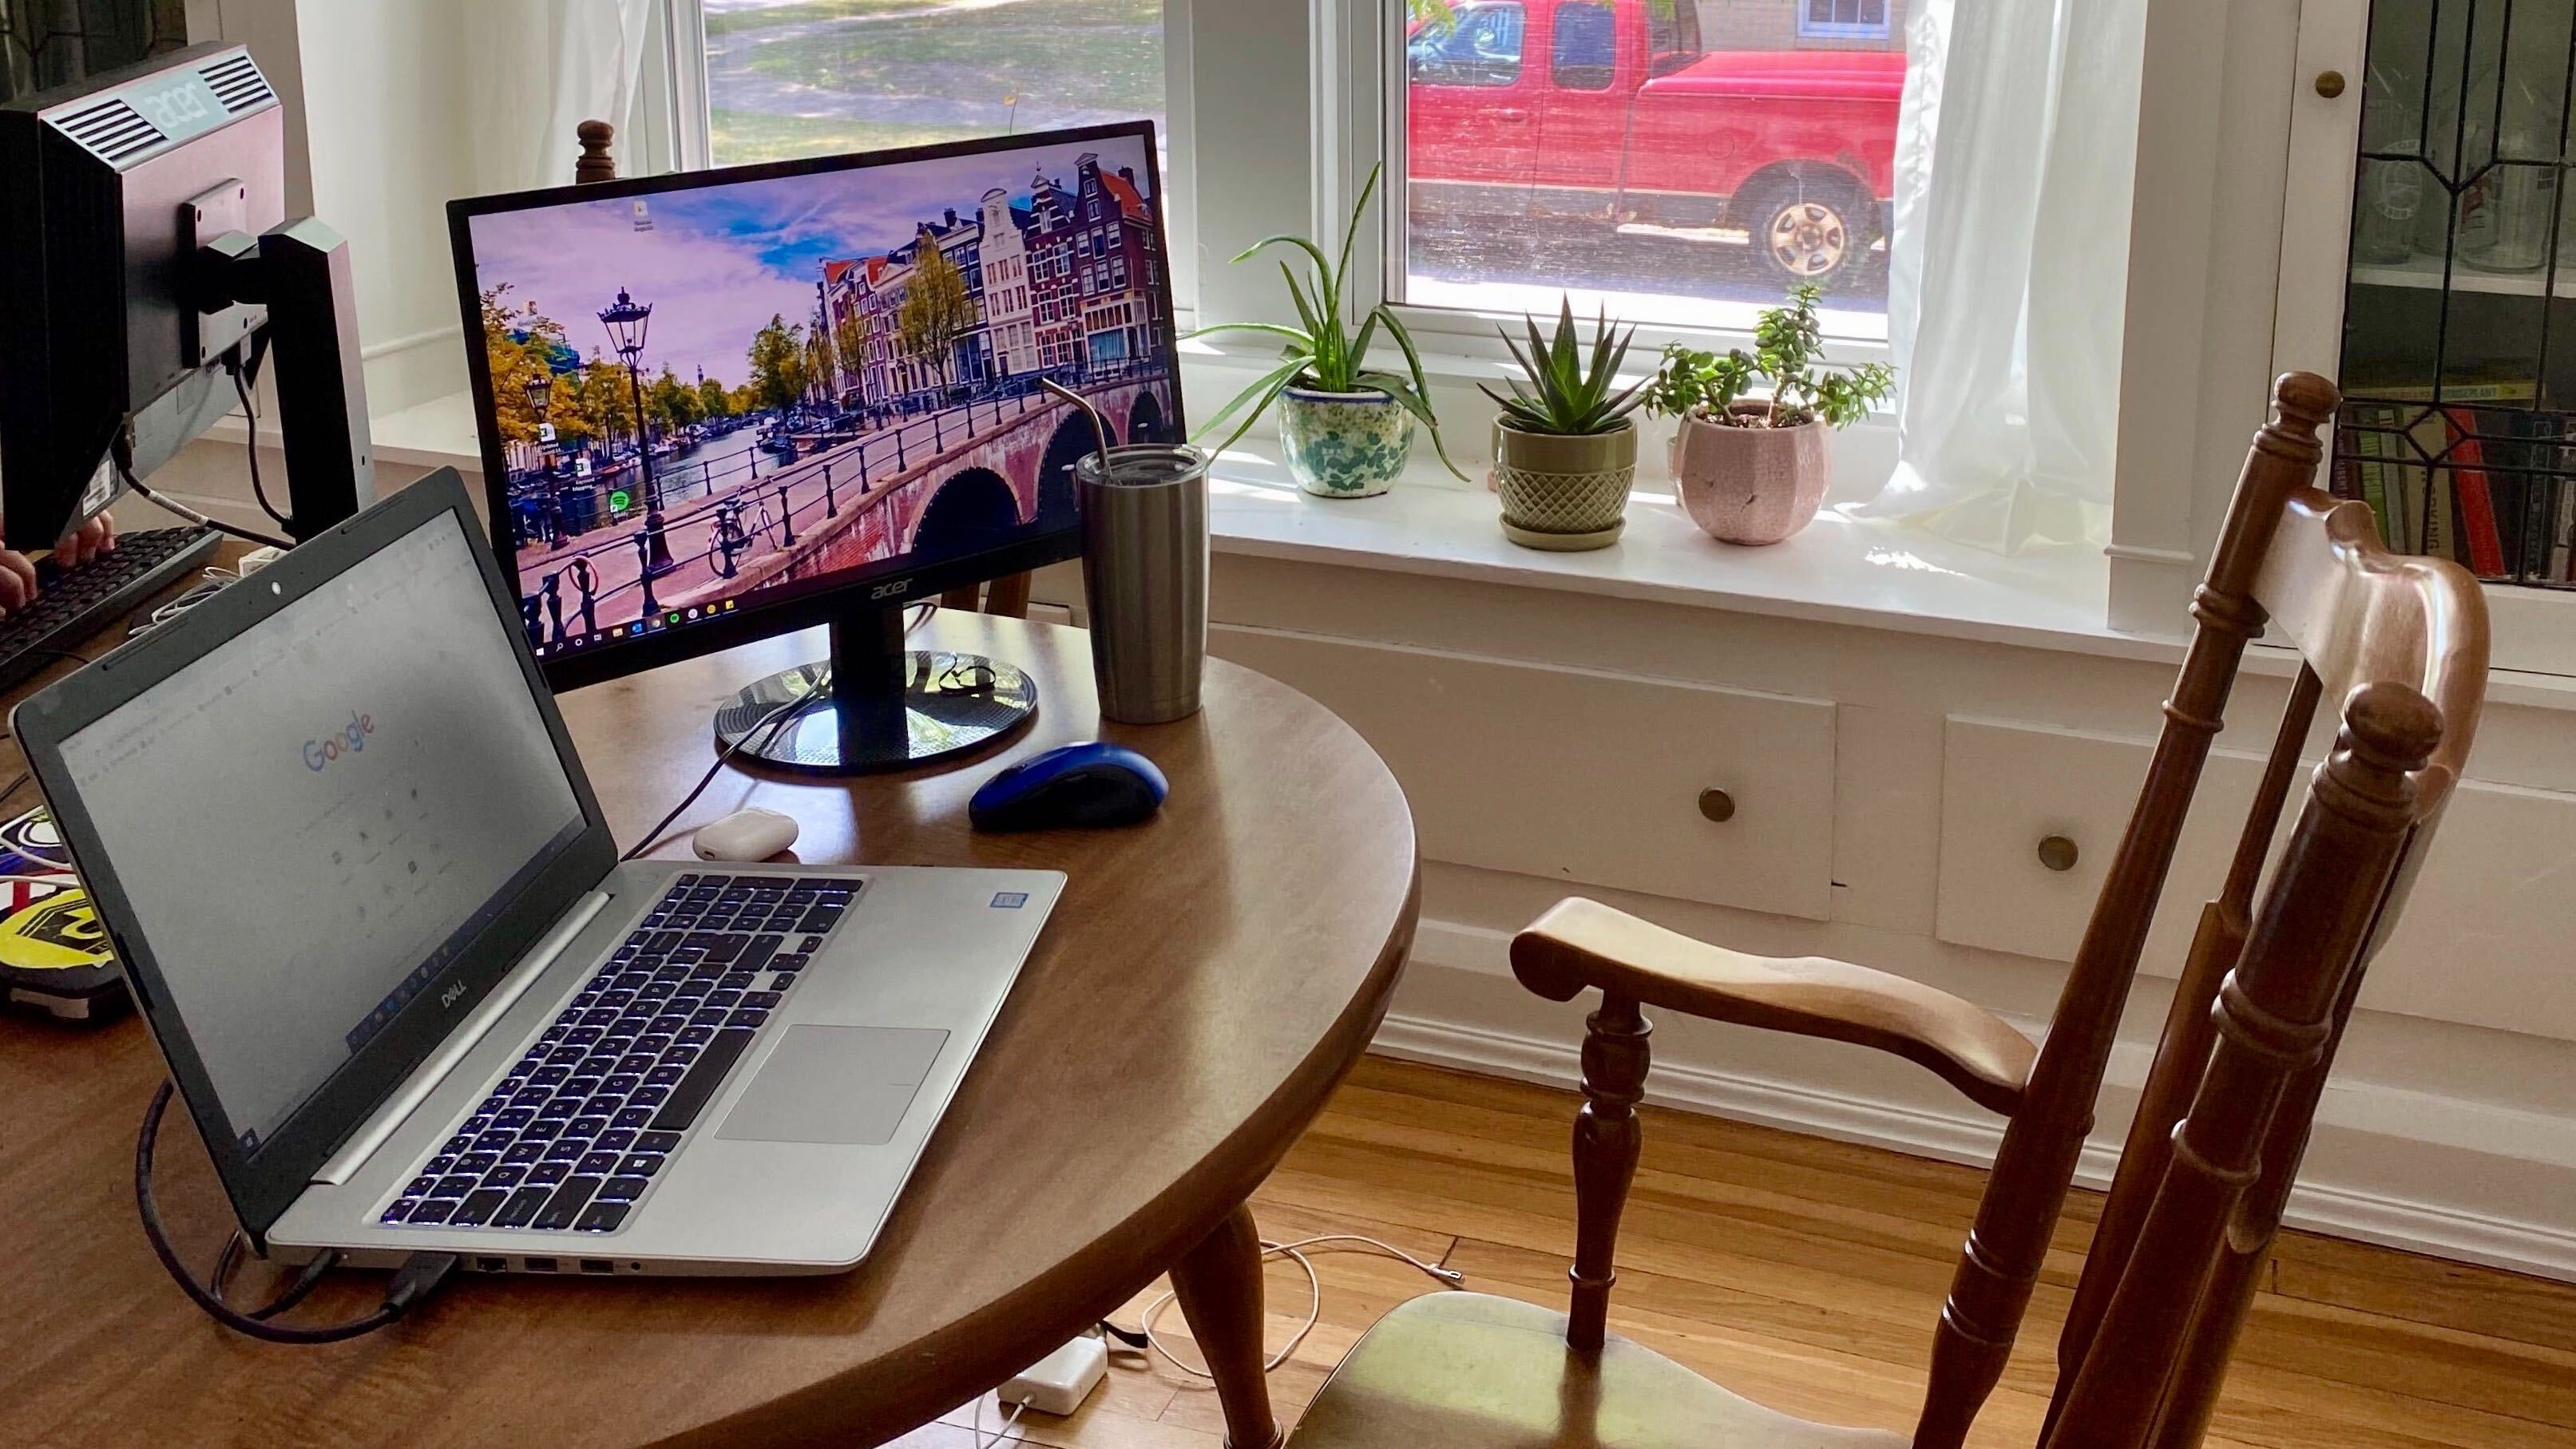 Kitchen table serves as a remote worker's desk while WFH